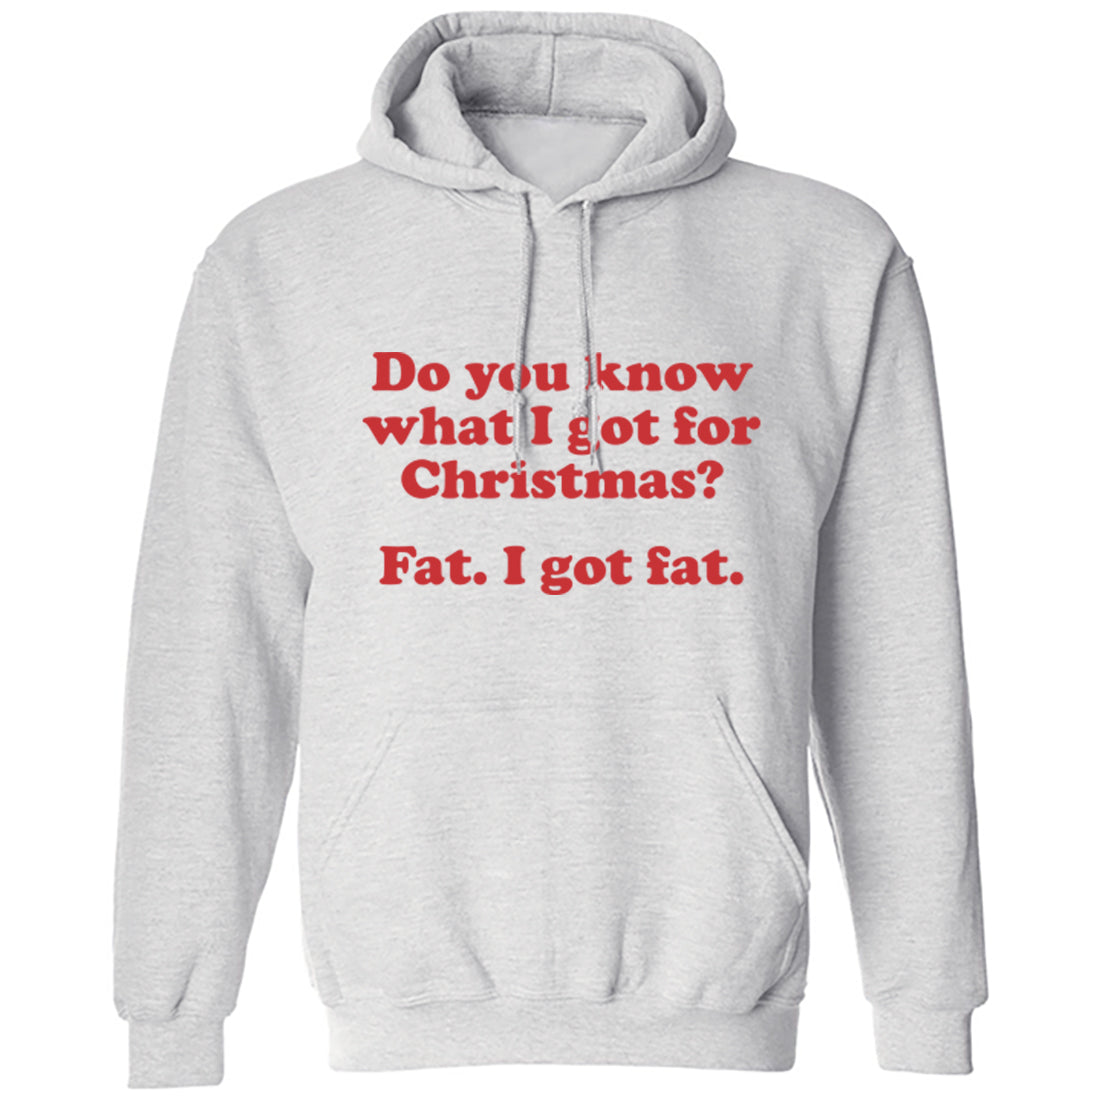 Do You Know What I Got For Christmas? Fat. I Got Fat Unisex Hoodie K1178 - Illustrated Identity Ltd.